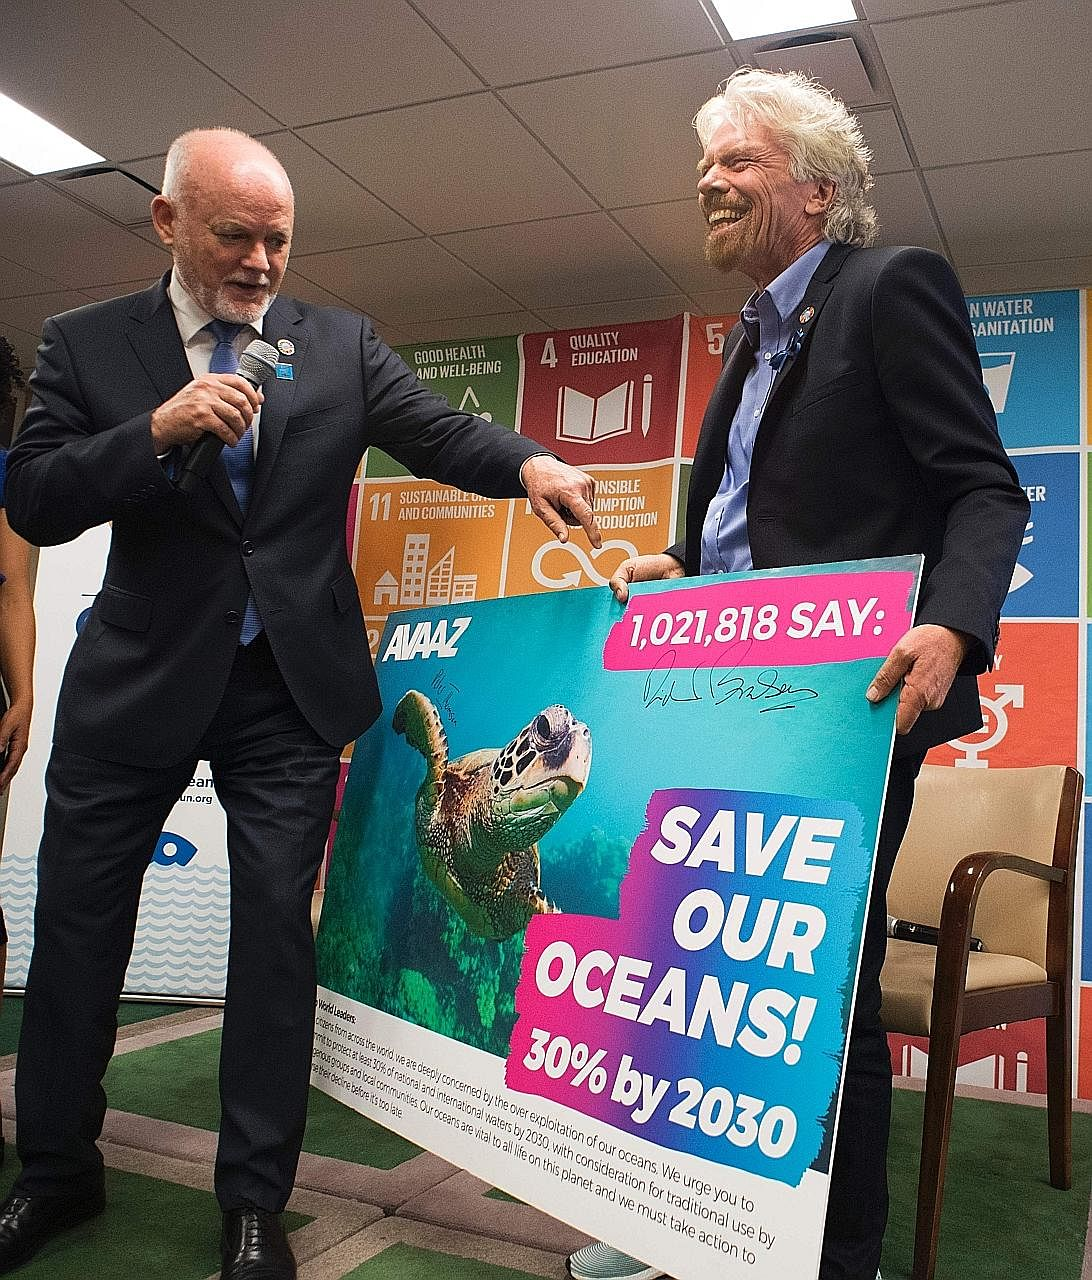 UN General Assembly president Peter Thomson (far left) and Mr Richard Branson with the petition carrying over one million signatures. The petition urges governments to protect at least 30 per cent of the world's oceans by 2030.